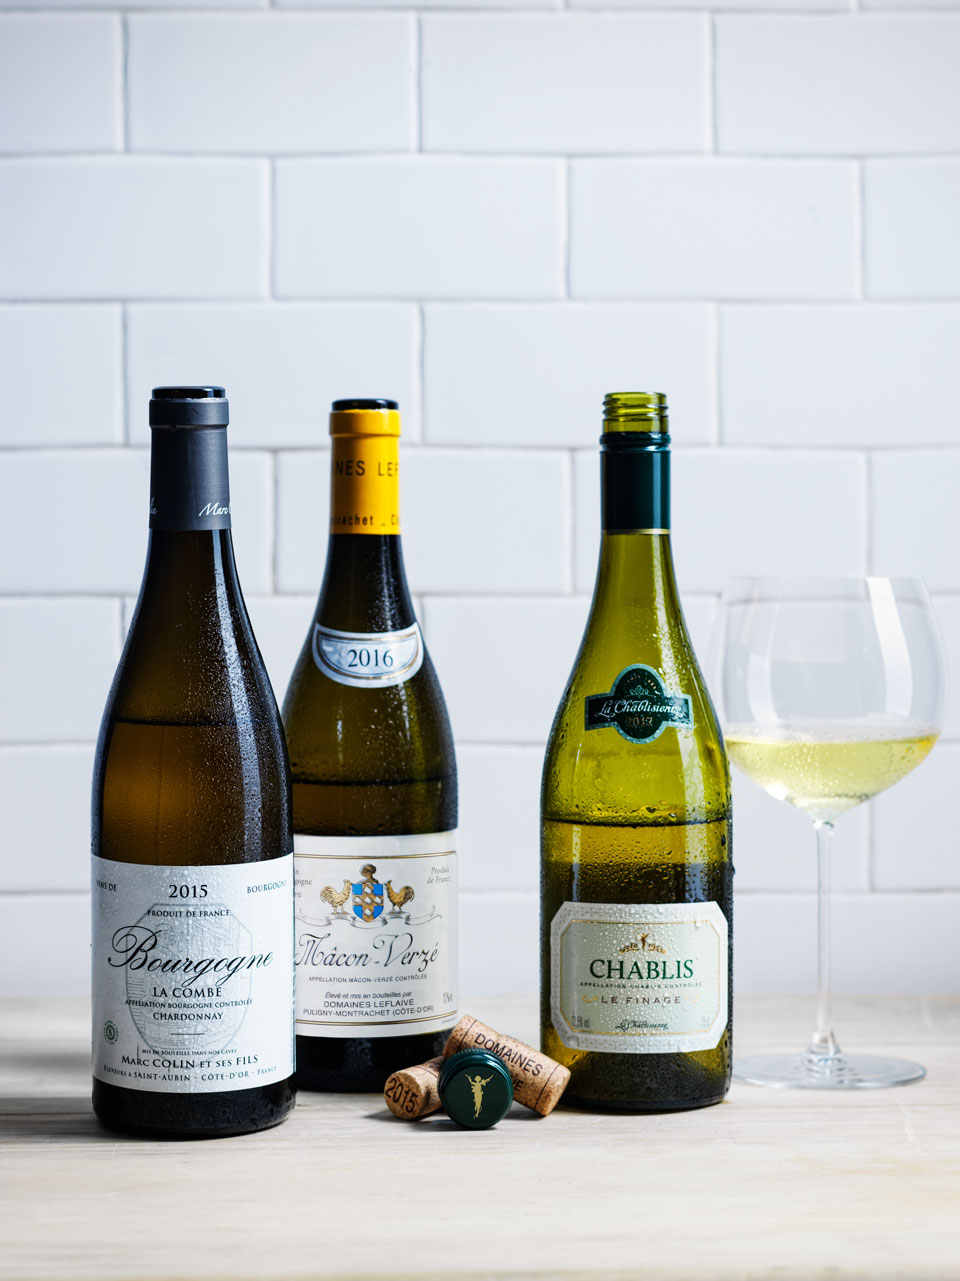 The Marc Colin et Fils and La Chablisienne Le Finage were the top chardonnays from the tasting.